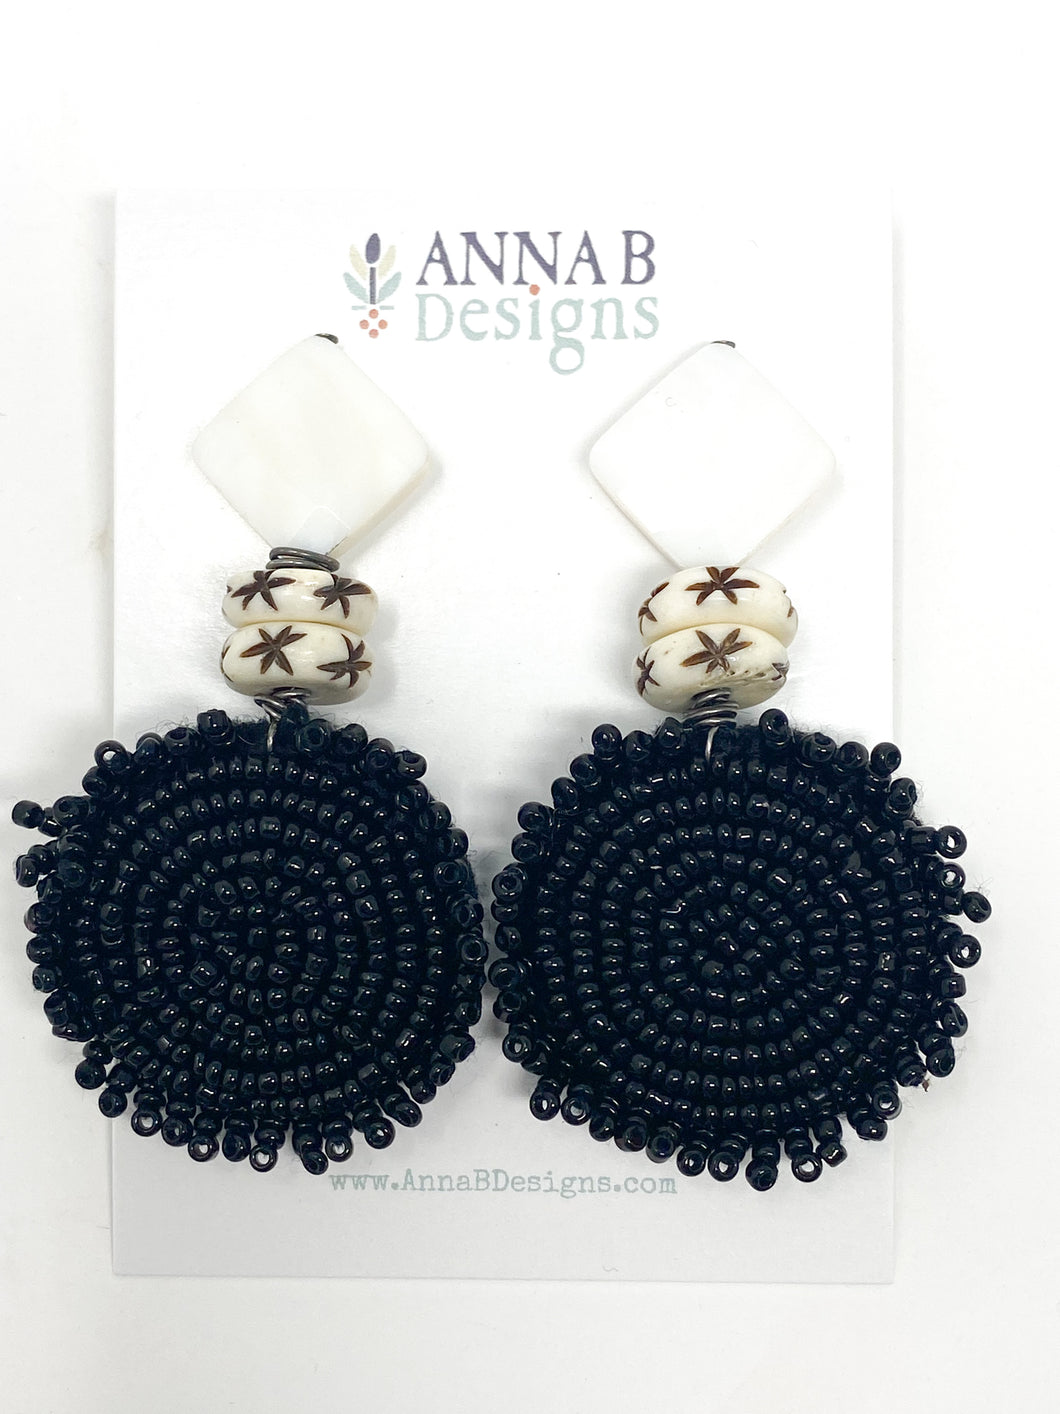 Caley Beaded Earrings | Black